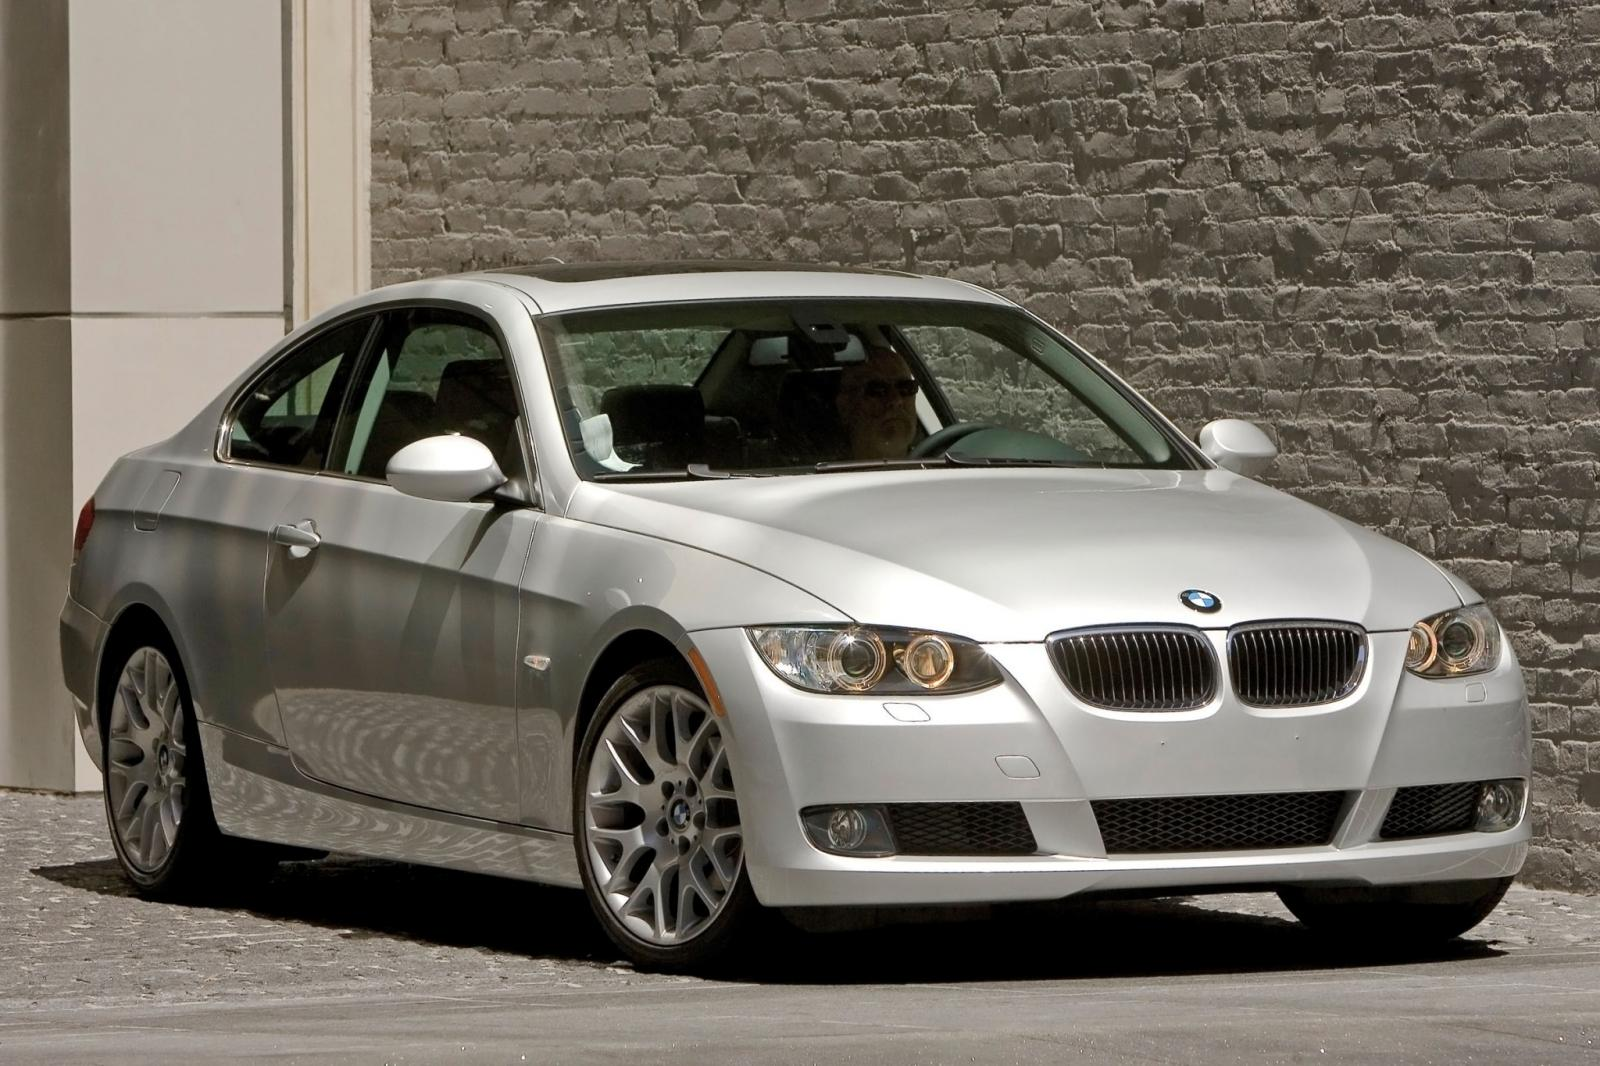 2007 bmw 3 series information and photos zombiedrive. Black Bedroom Furniture Sets. Home Design Ideas